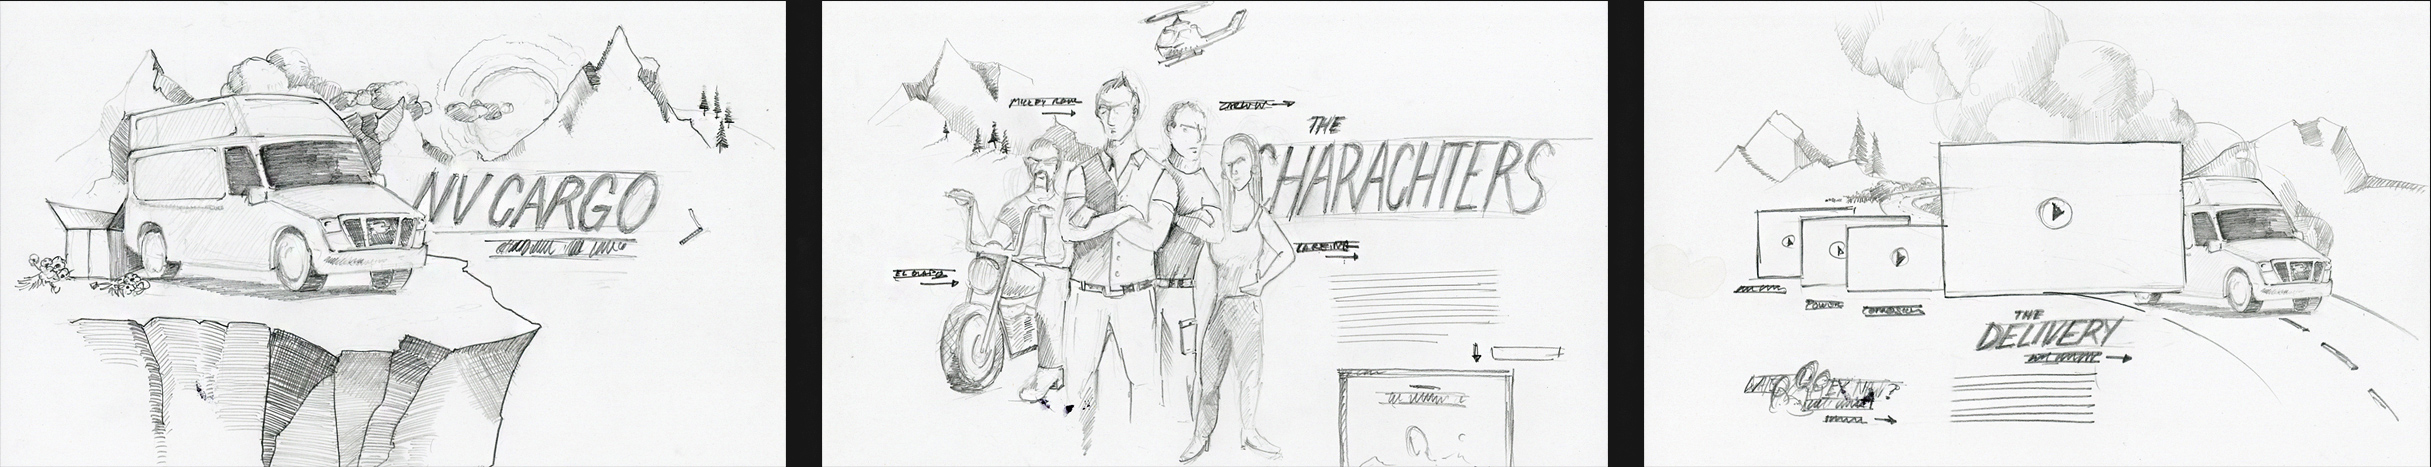 Landing page concept sketches